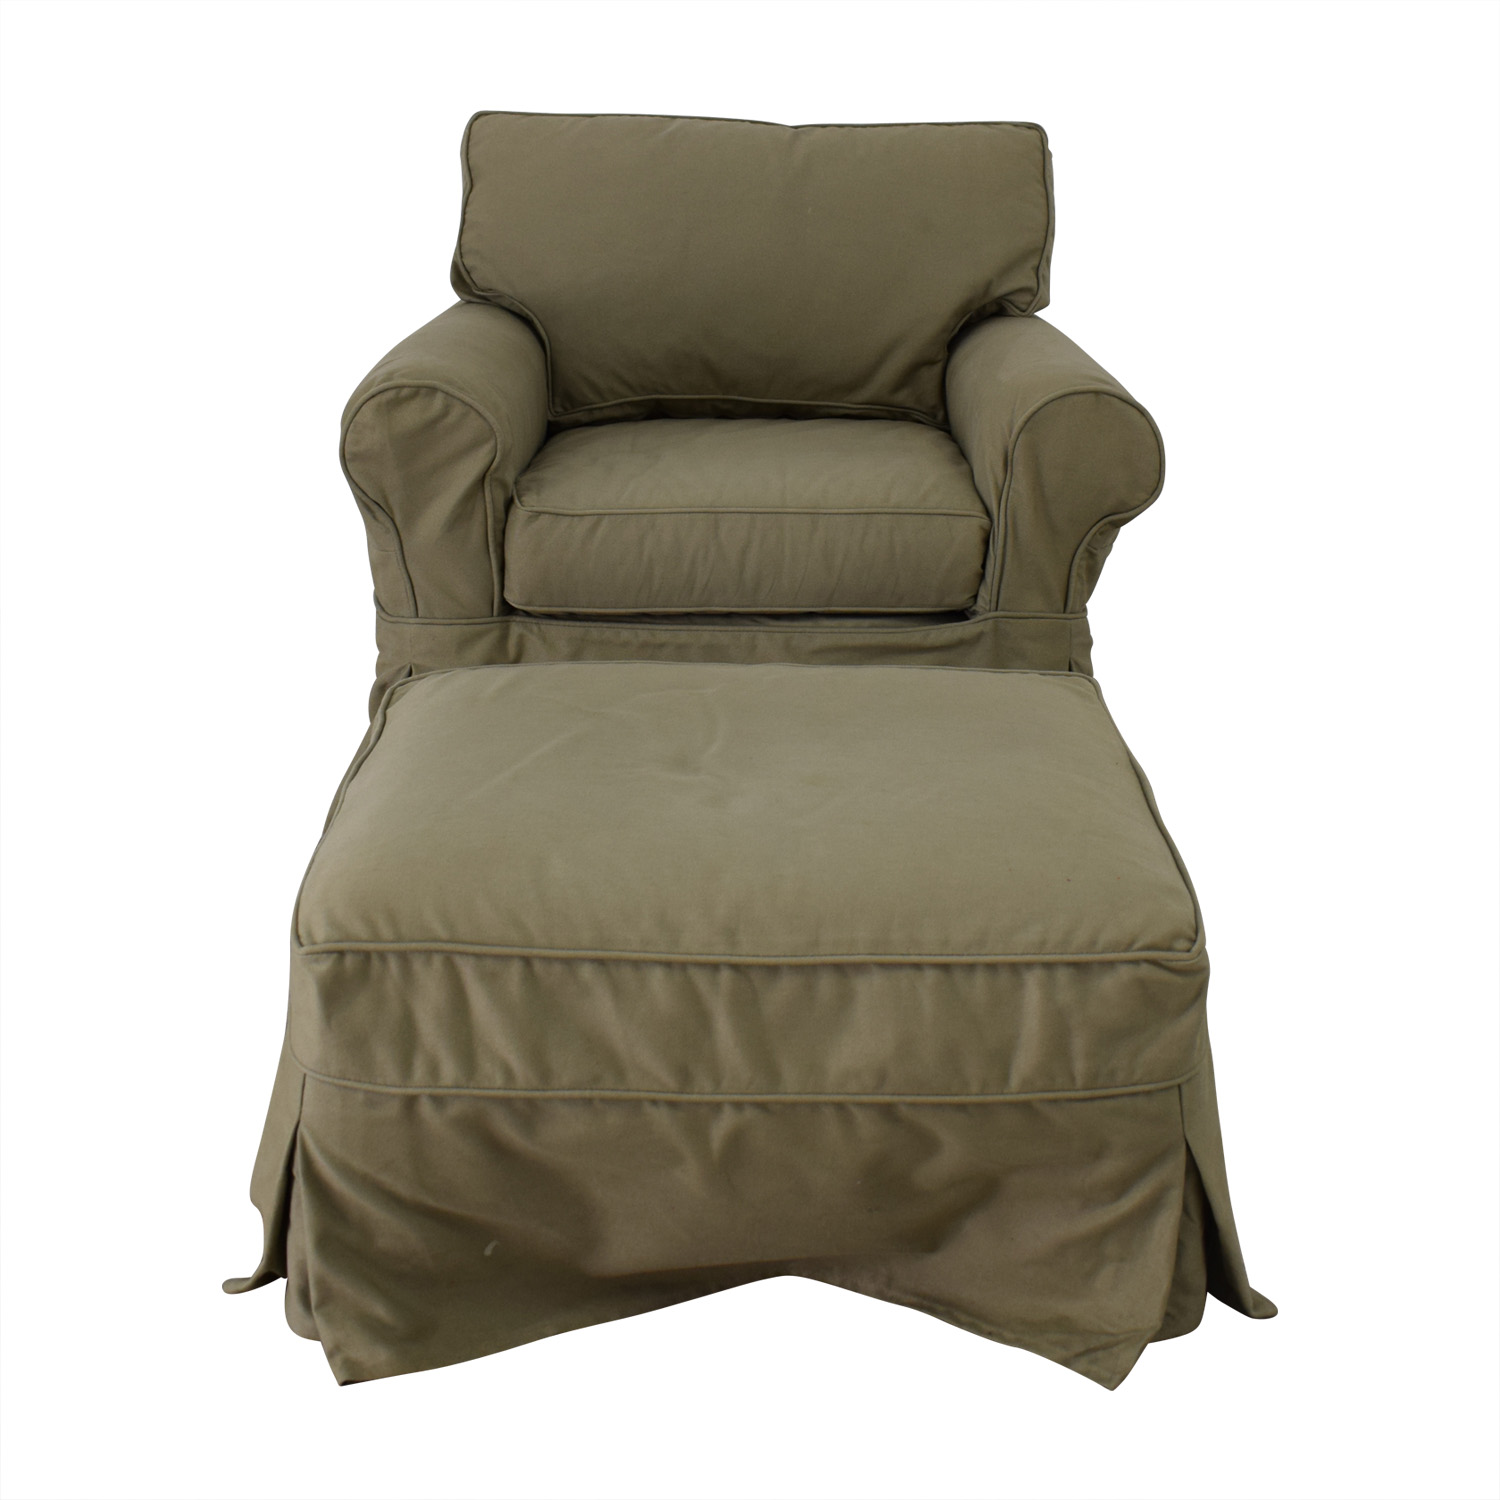 buy Pottery Barn Comfort Roll Arm Slip Covered Green Arm Chair and Ottoman Pottery Barn Sofas